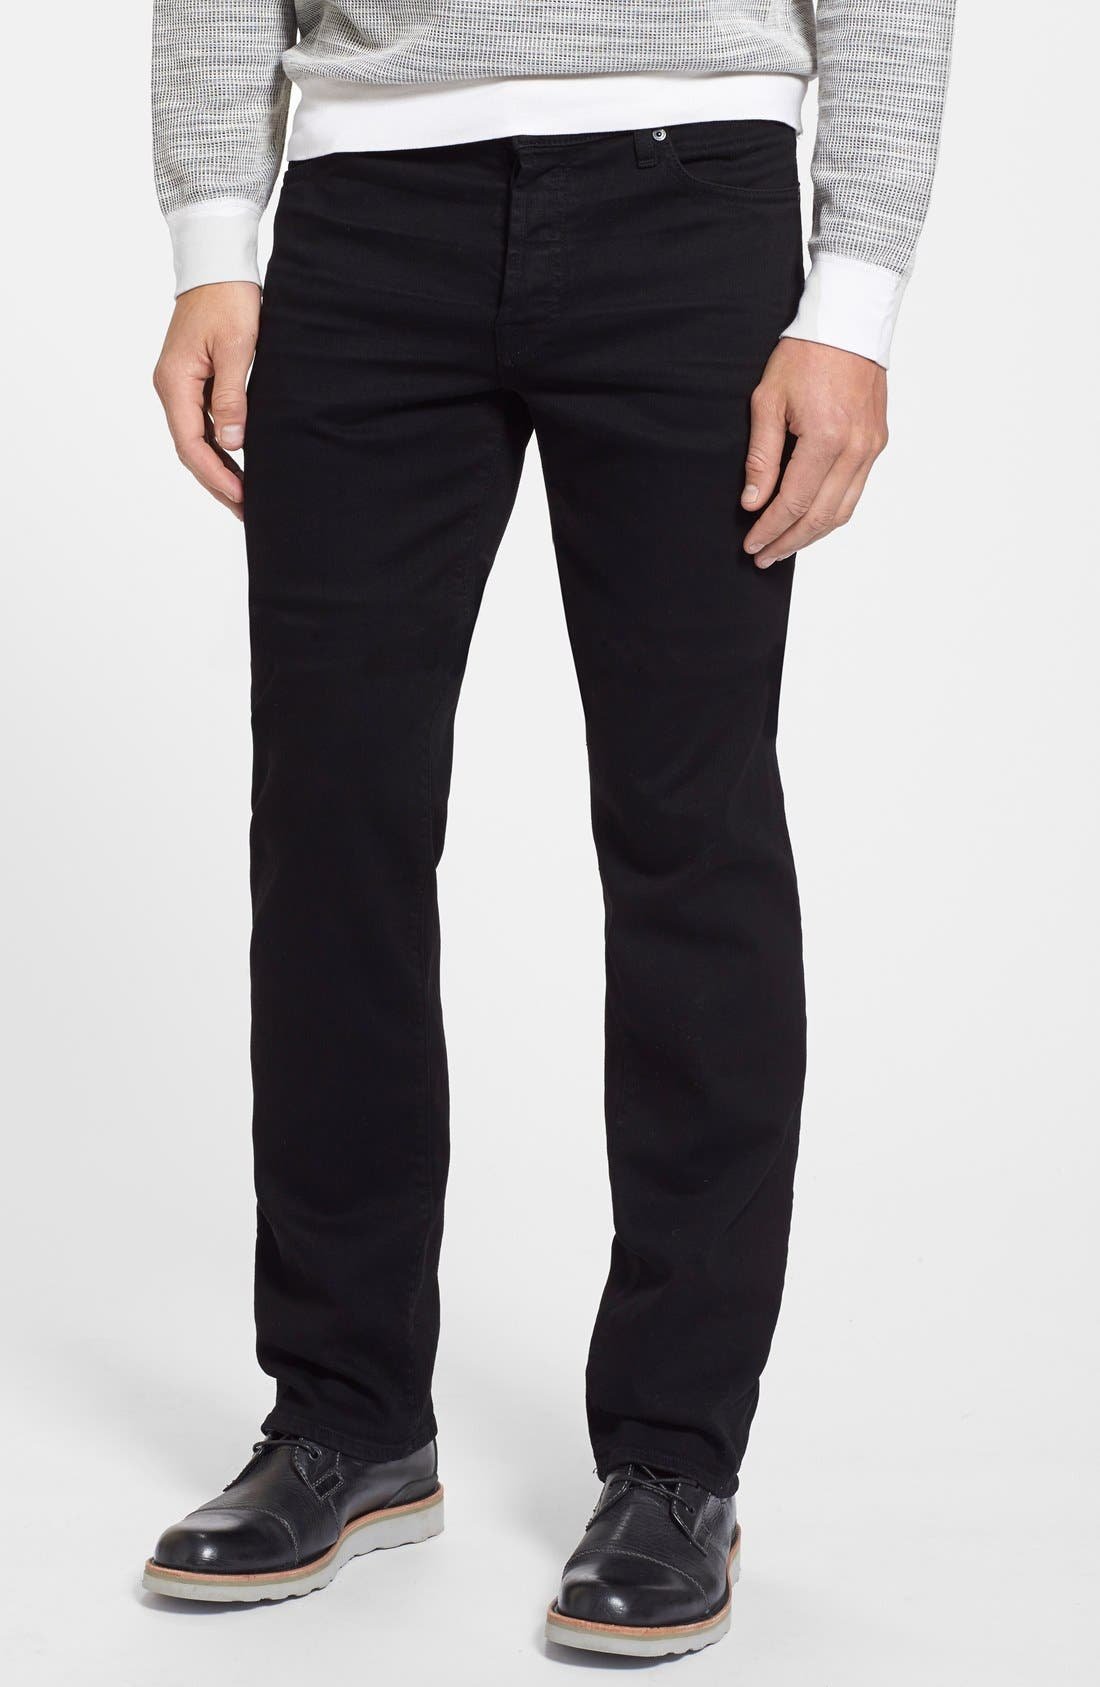 Main Image - 7 For All Mankind® The Standard - Luxe Performance Straight Leg Jeans (Nightshade Black)